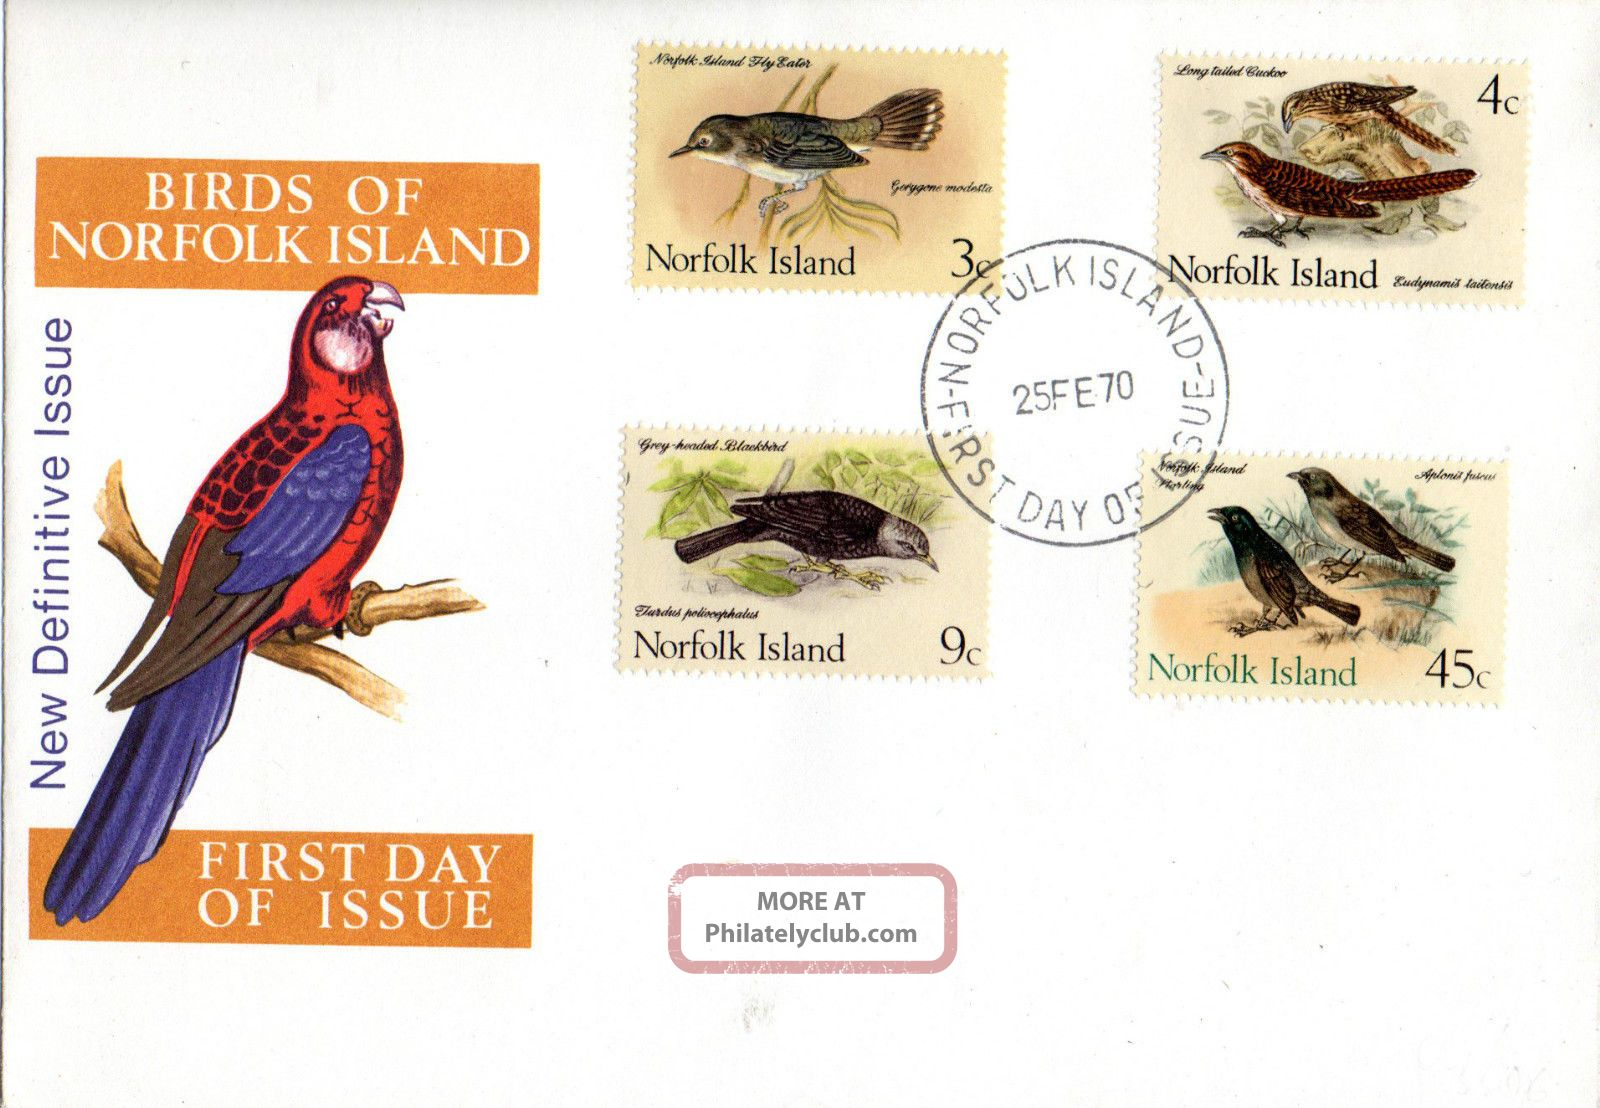 Norfolk Island 25 February 1970 Native Birds Unaddressed First Day Cover Shs British Colonies & Territories photo